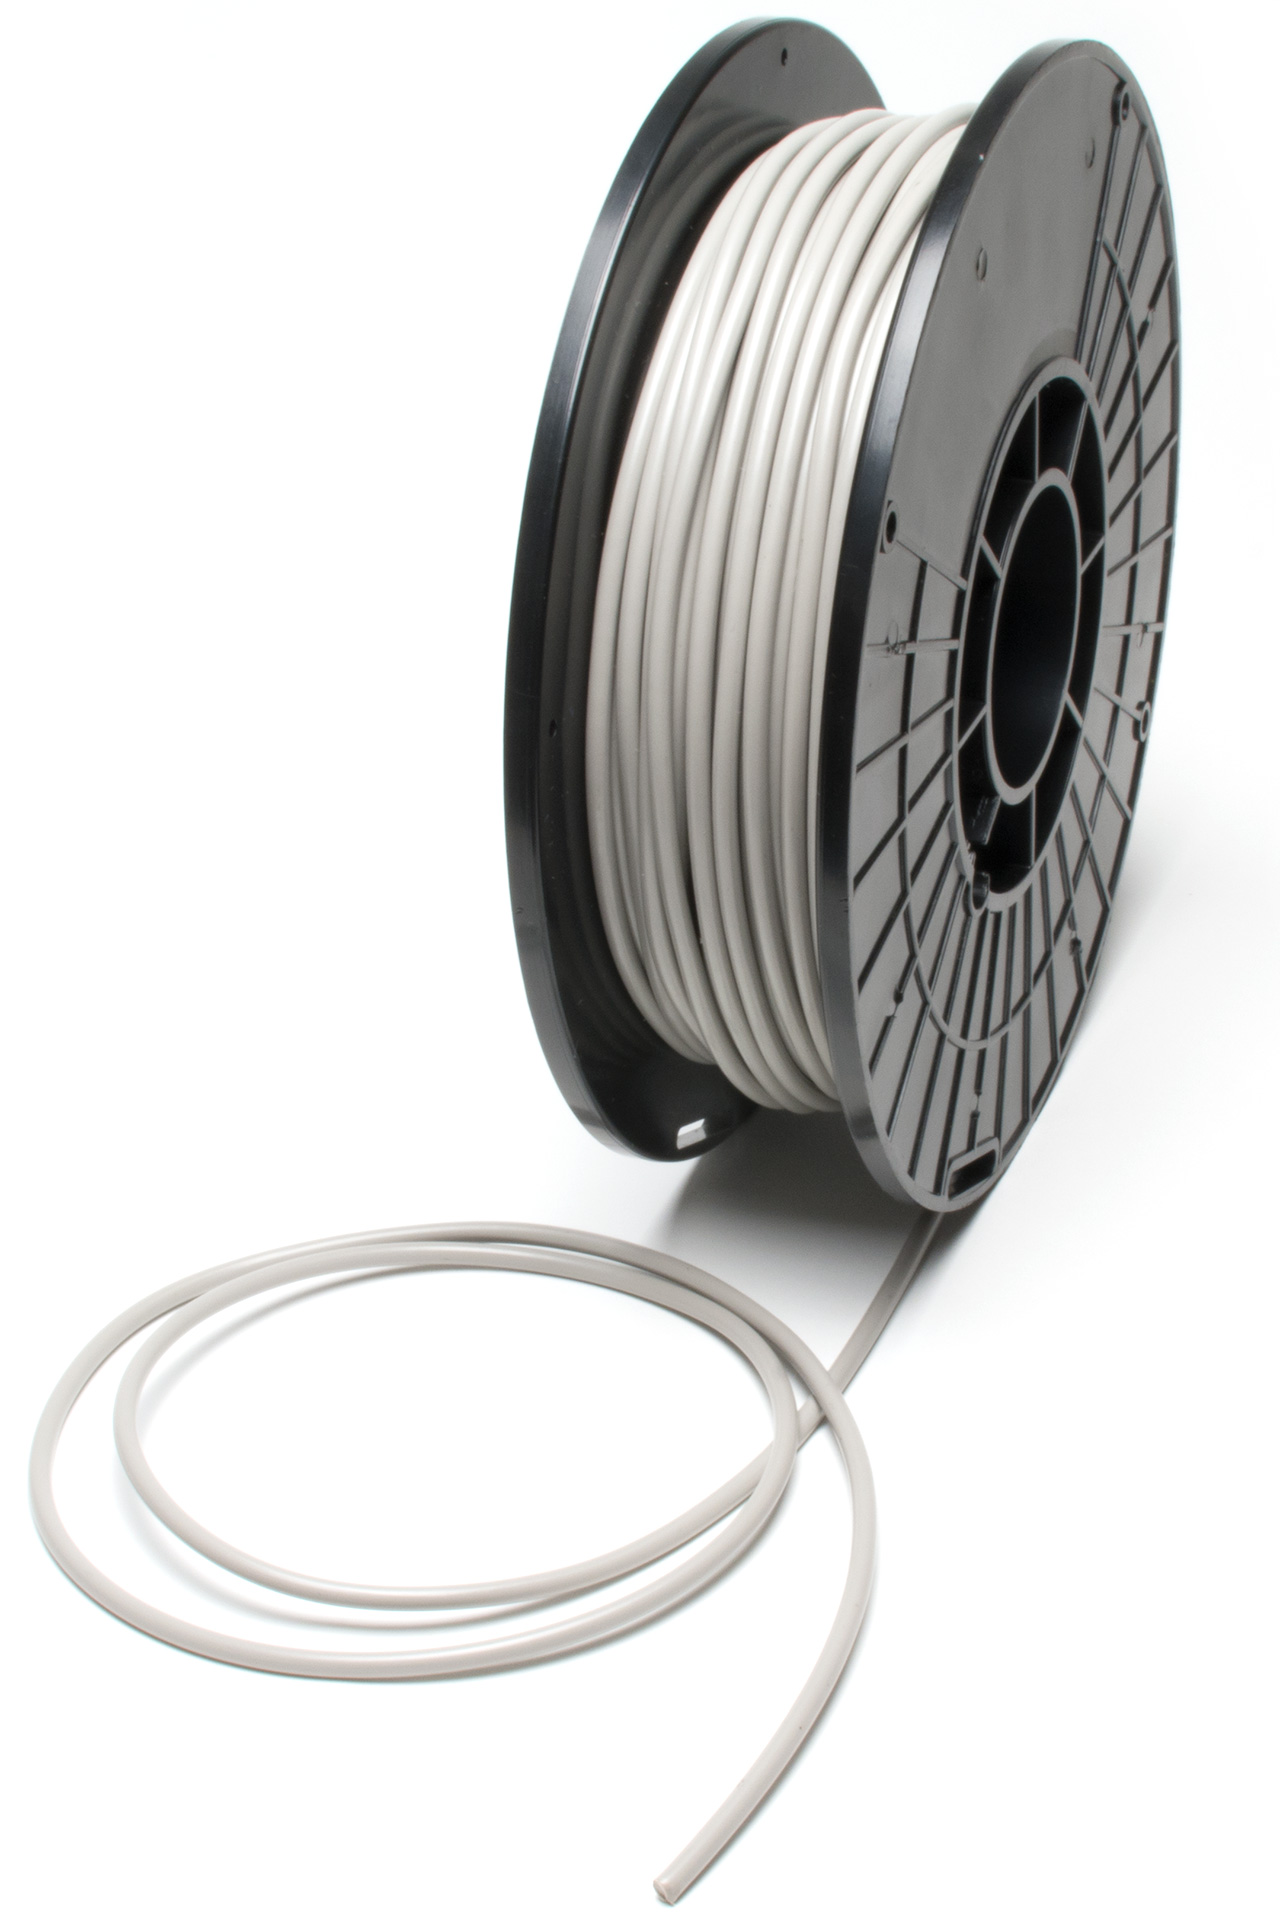 Transit welding cord in white